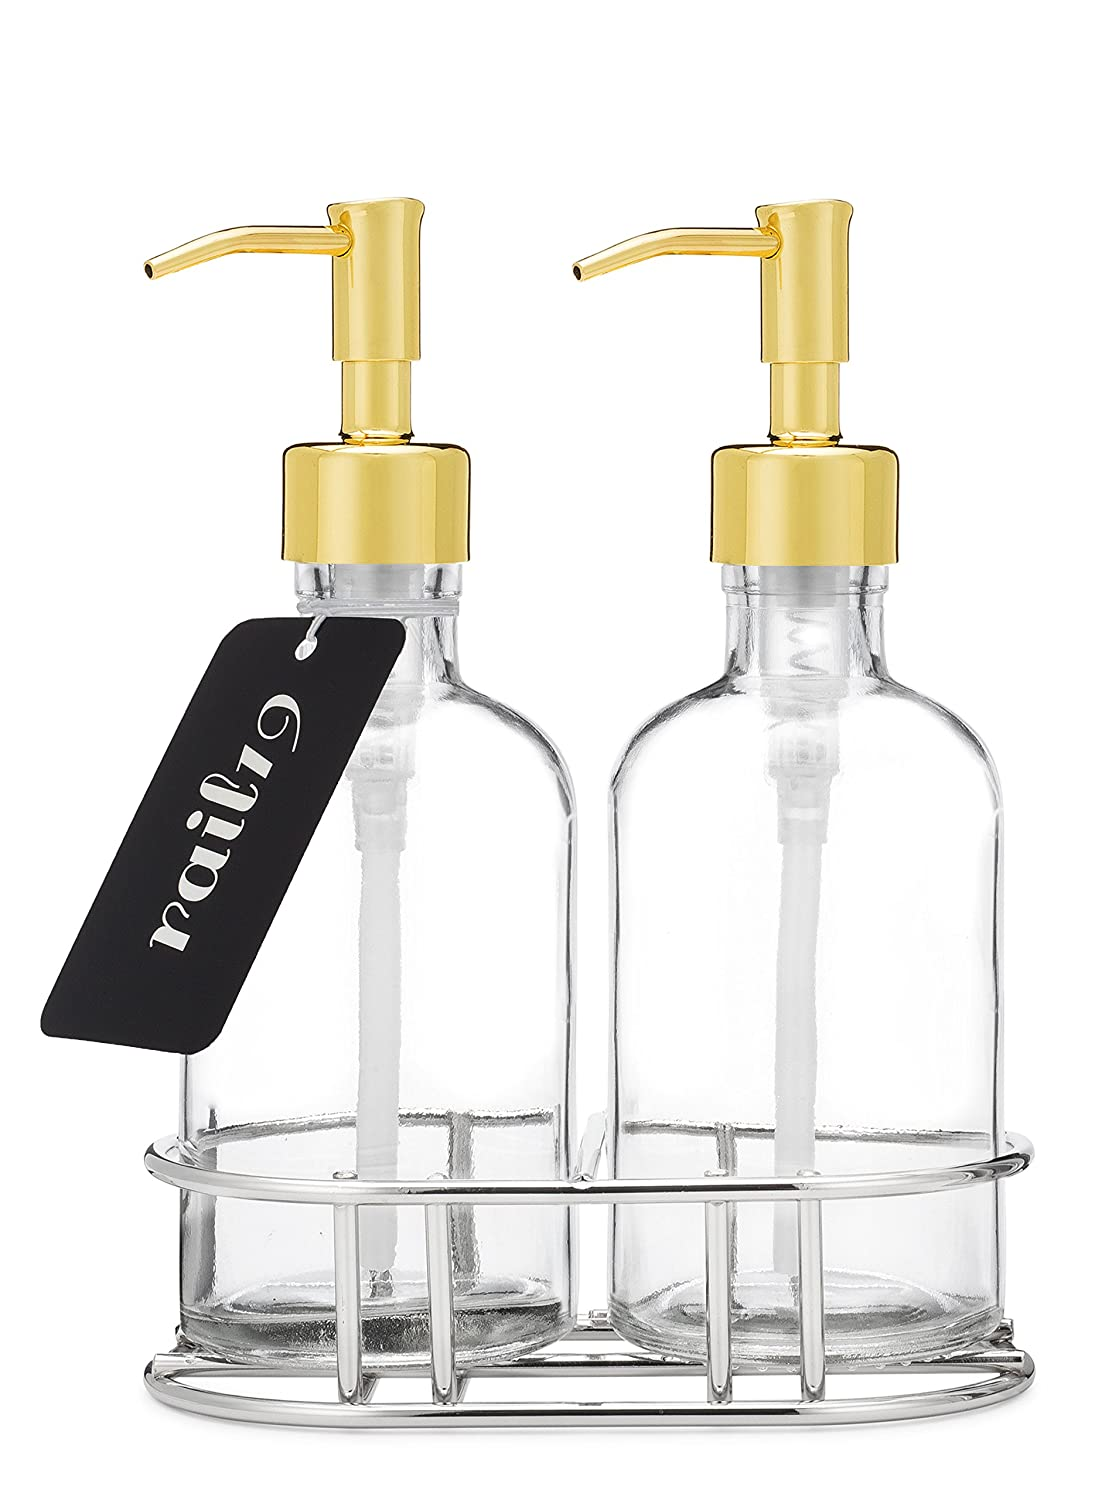 Rail19 Glass Soap Dispenser Set with Metal Lotion and Soap Pump + Chrome Metal Caddy (Gold) R1900113CBG